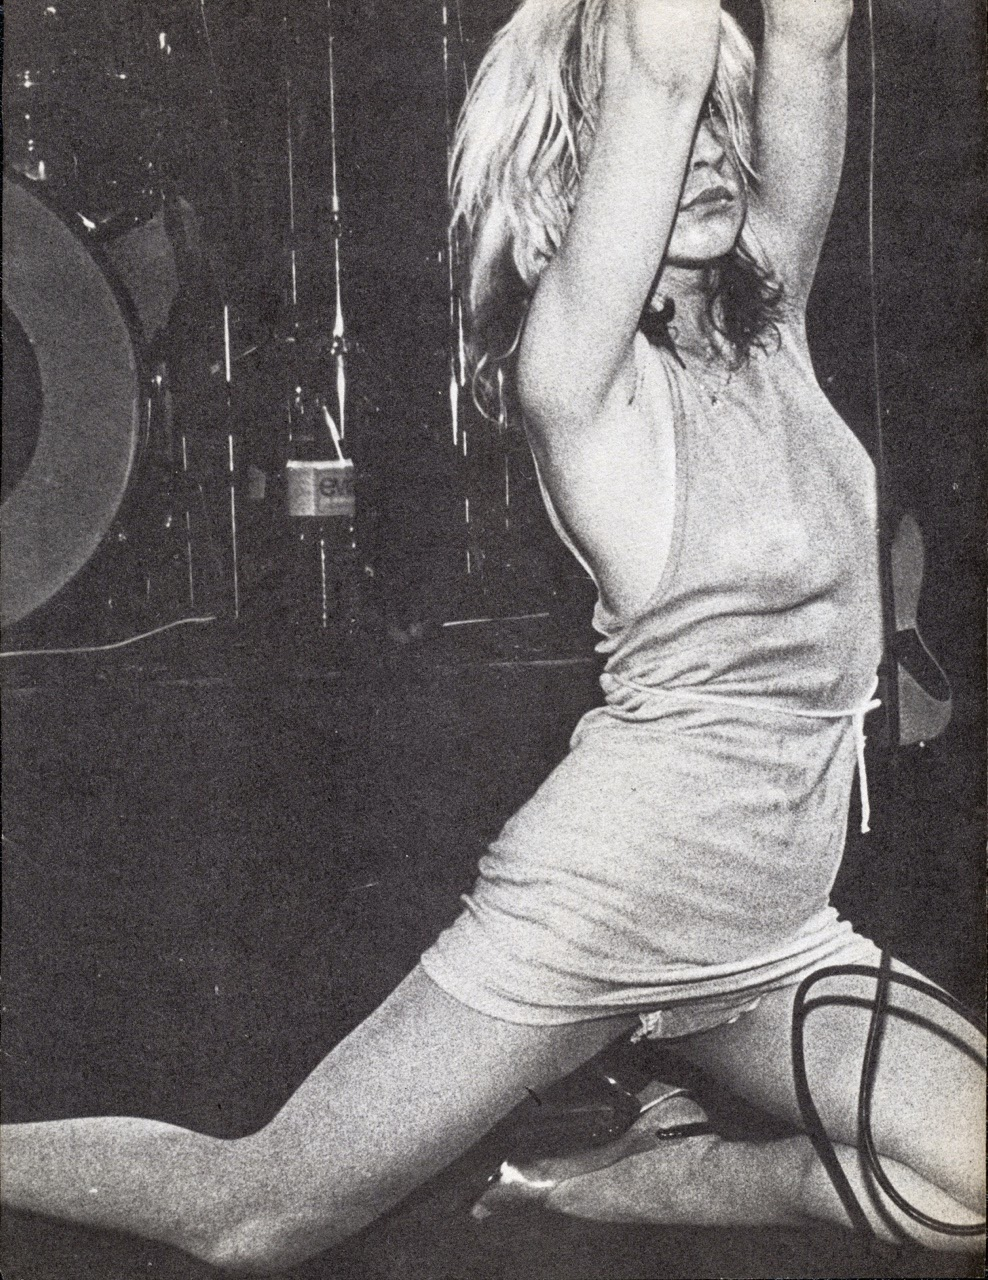 debbie harry performing with blondie